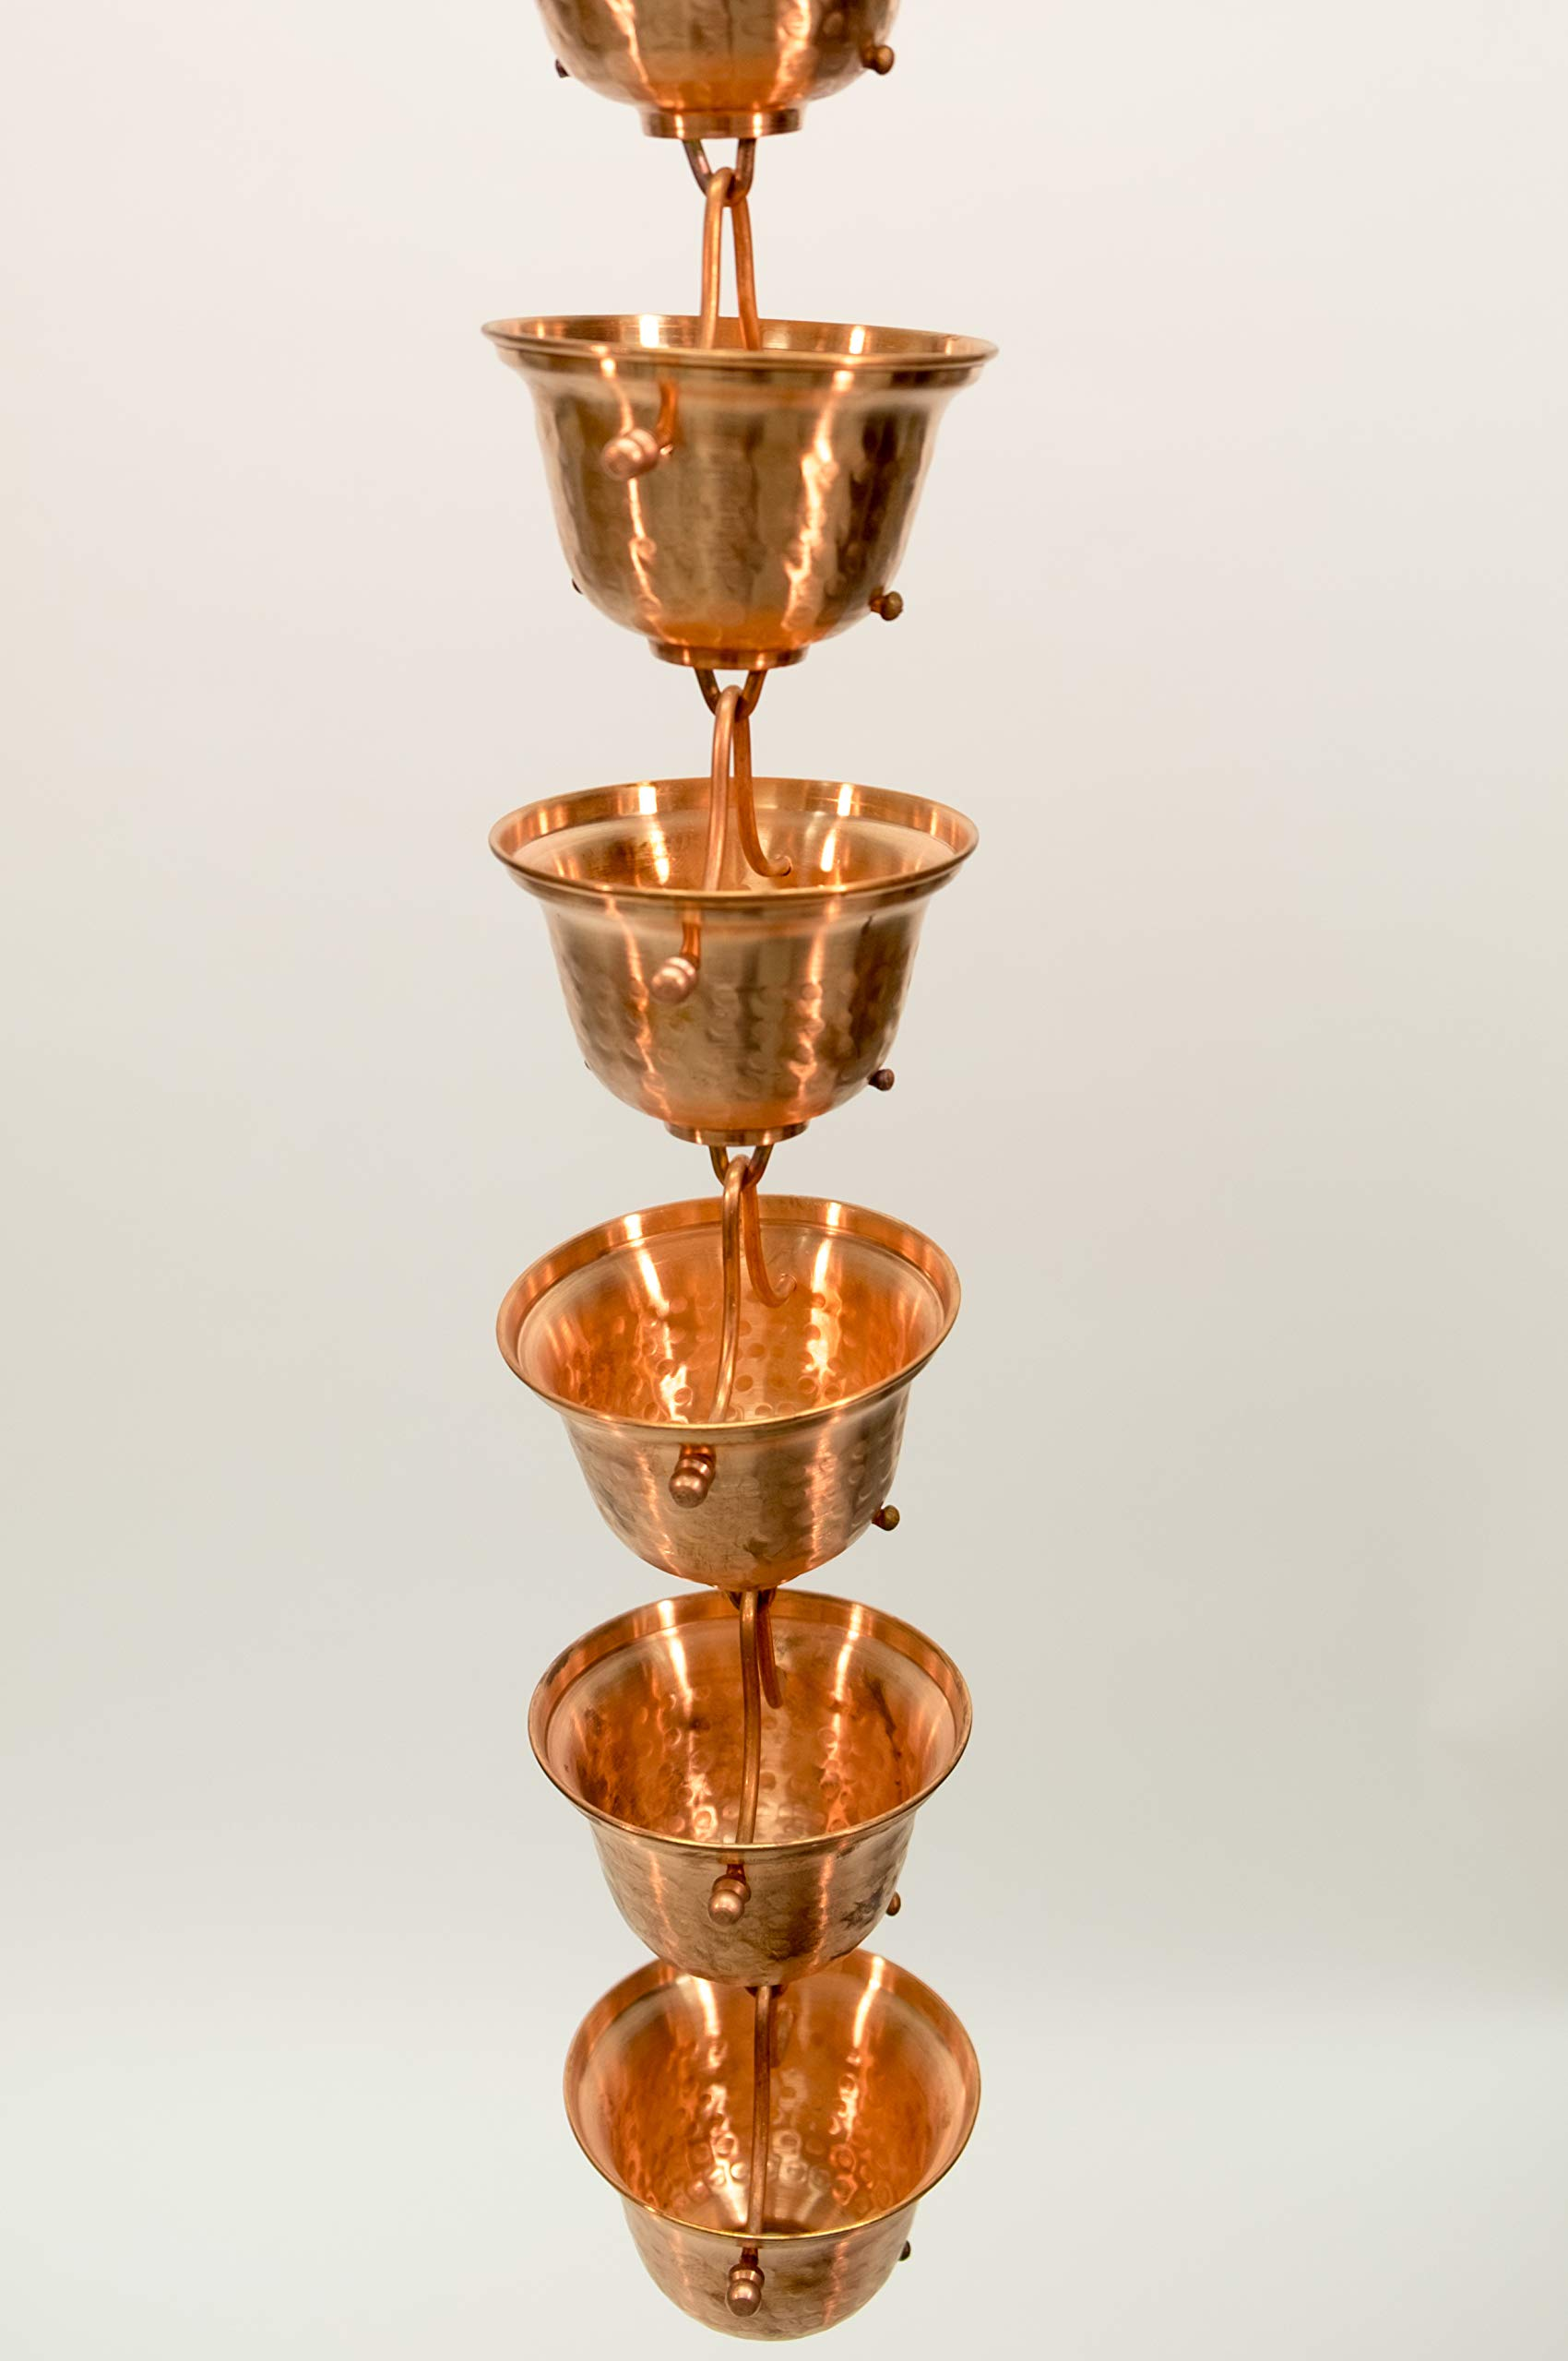 Nutshell Stores Copper Bells Rain Chain with Installation Kit (10 Foot)